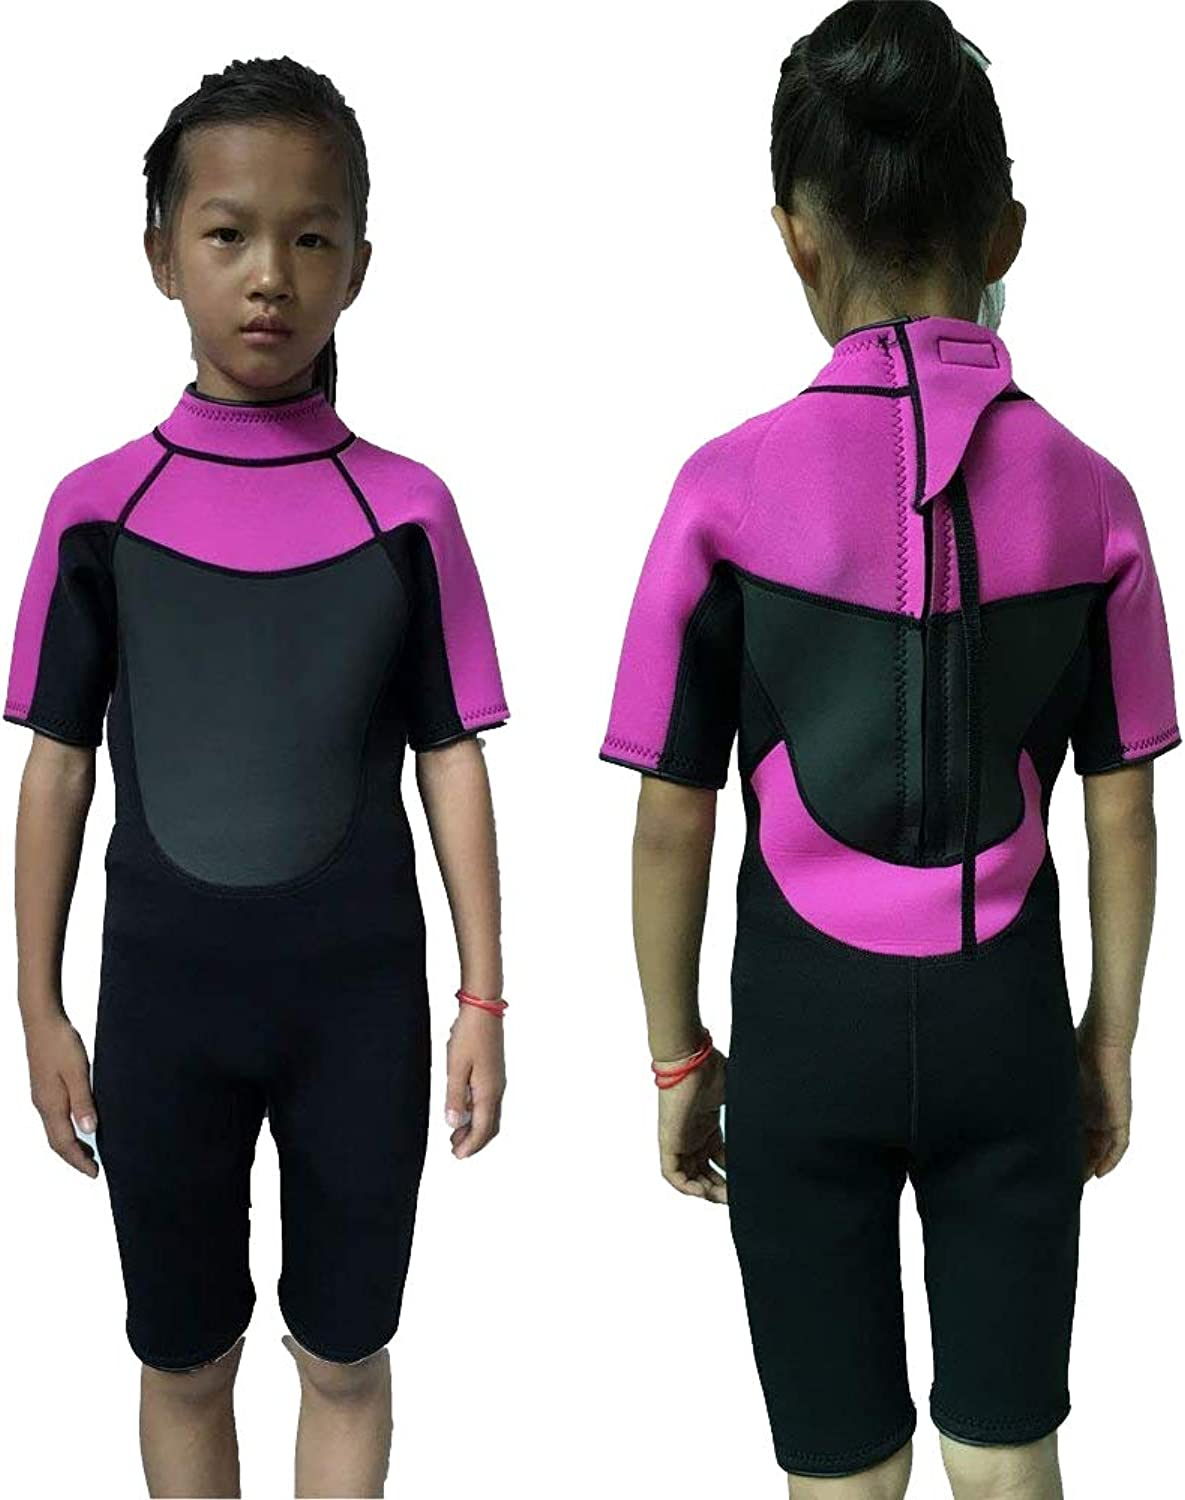 Realon Wetsuit Kids Shorties 3mm Boys Swim Surfing Snorkeling Wet Suits Youth